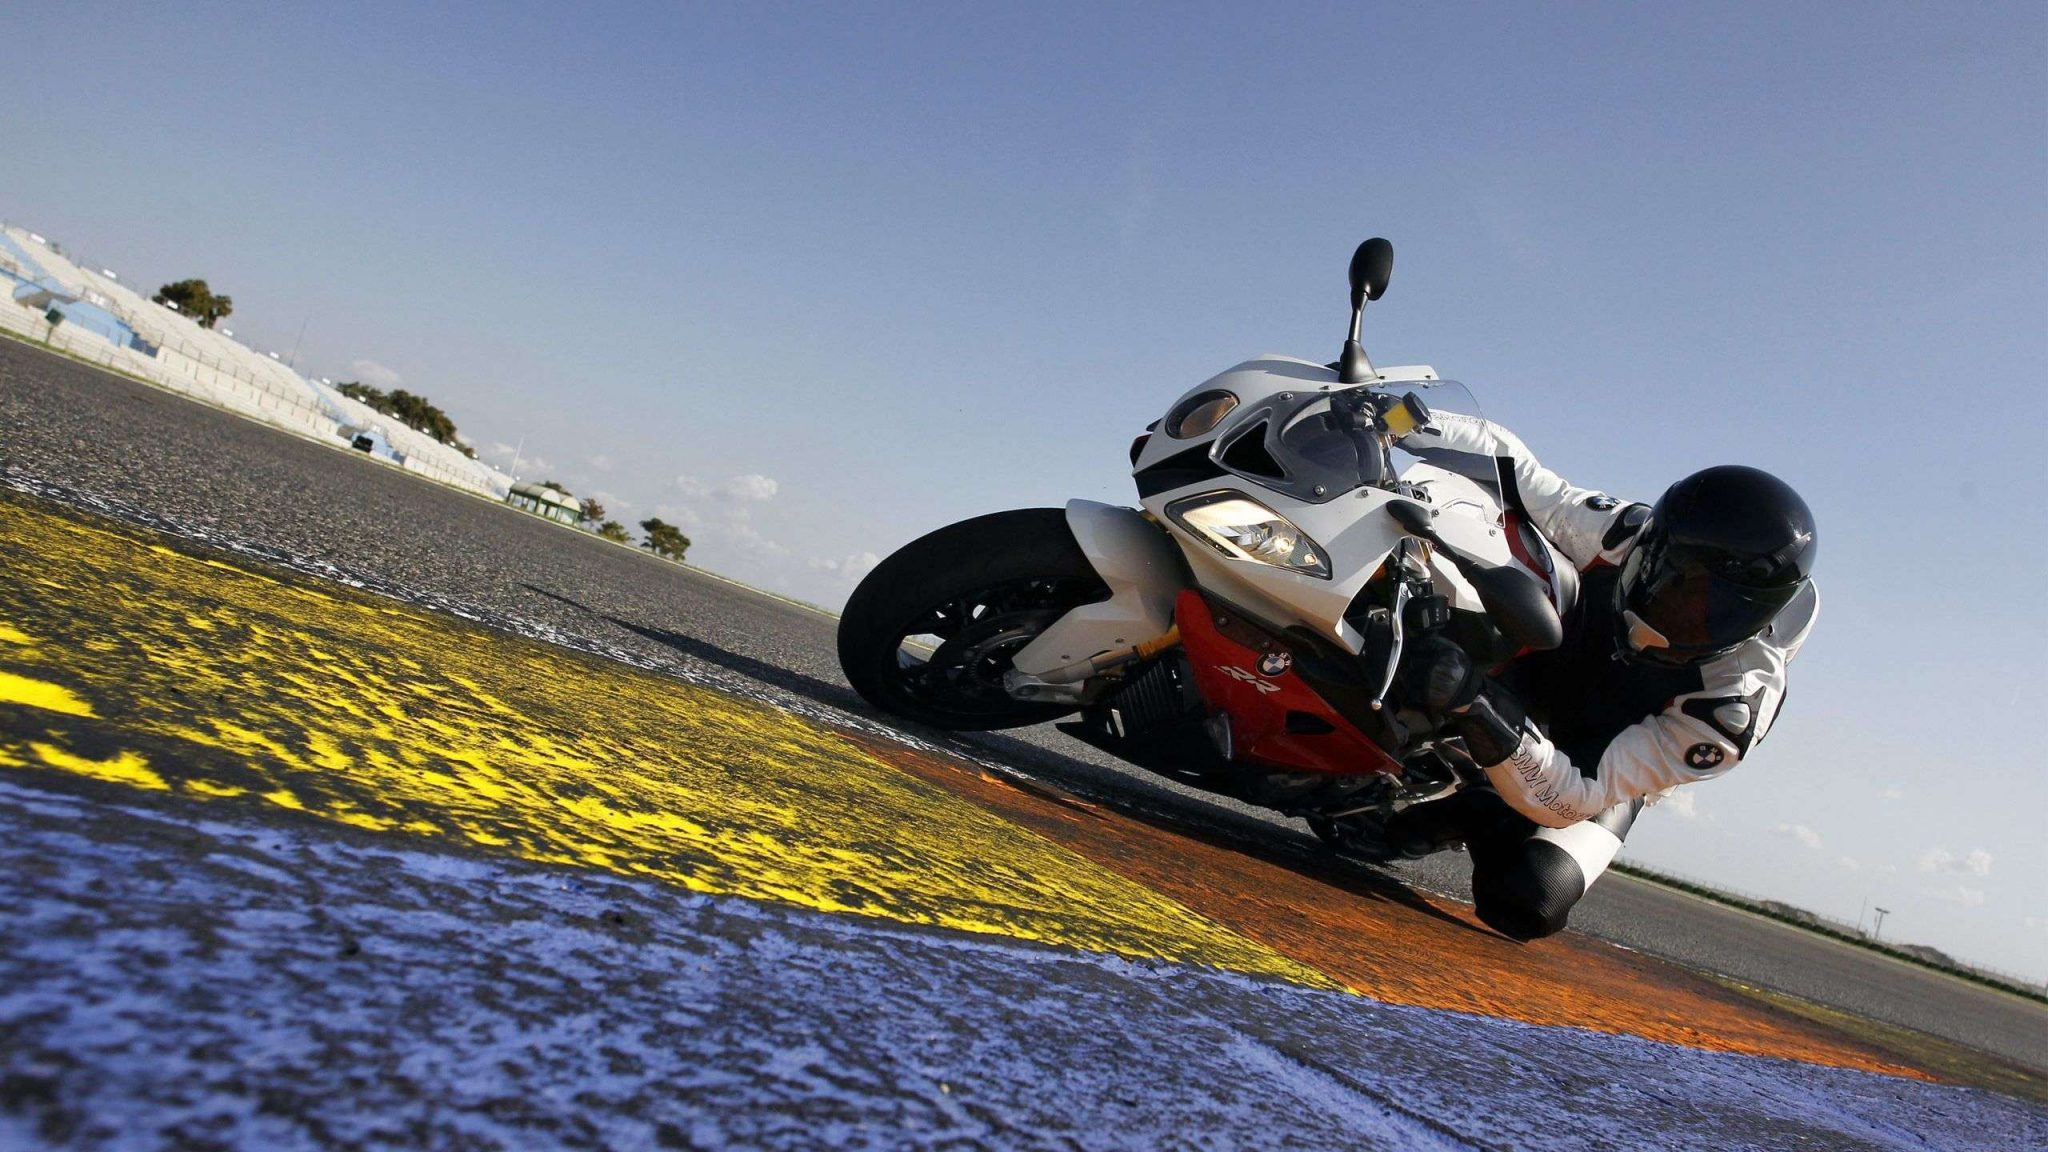 Bmw S1000rr Wallpapers Hd 10